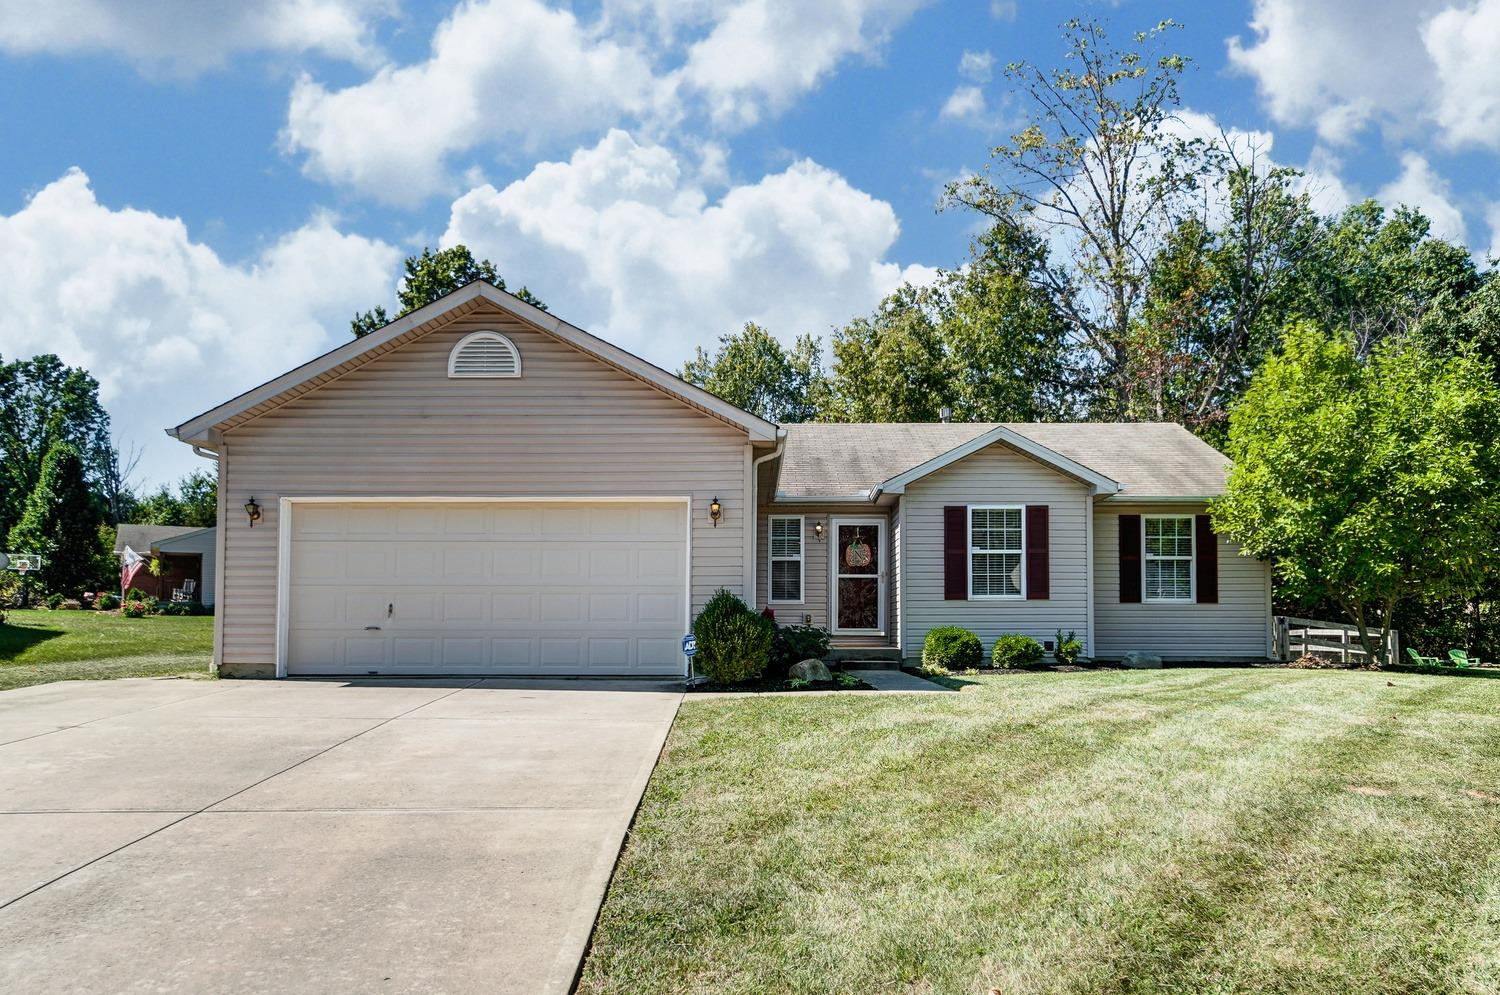 Property for sale at 3353 Whispering Trees Drive, Amelia,  Ohio 45102